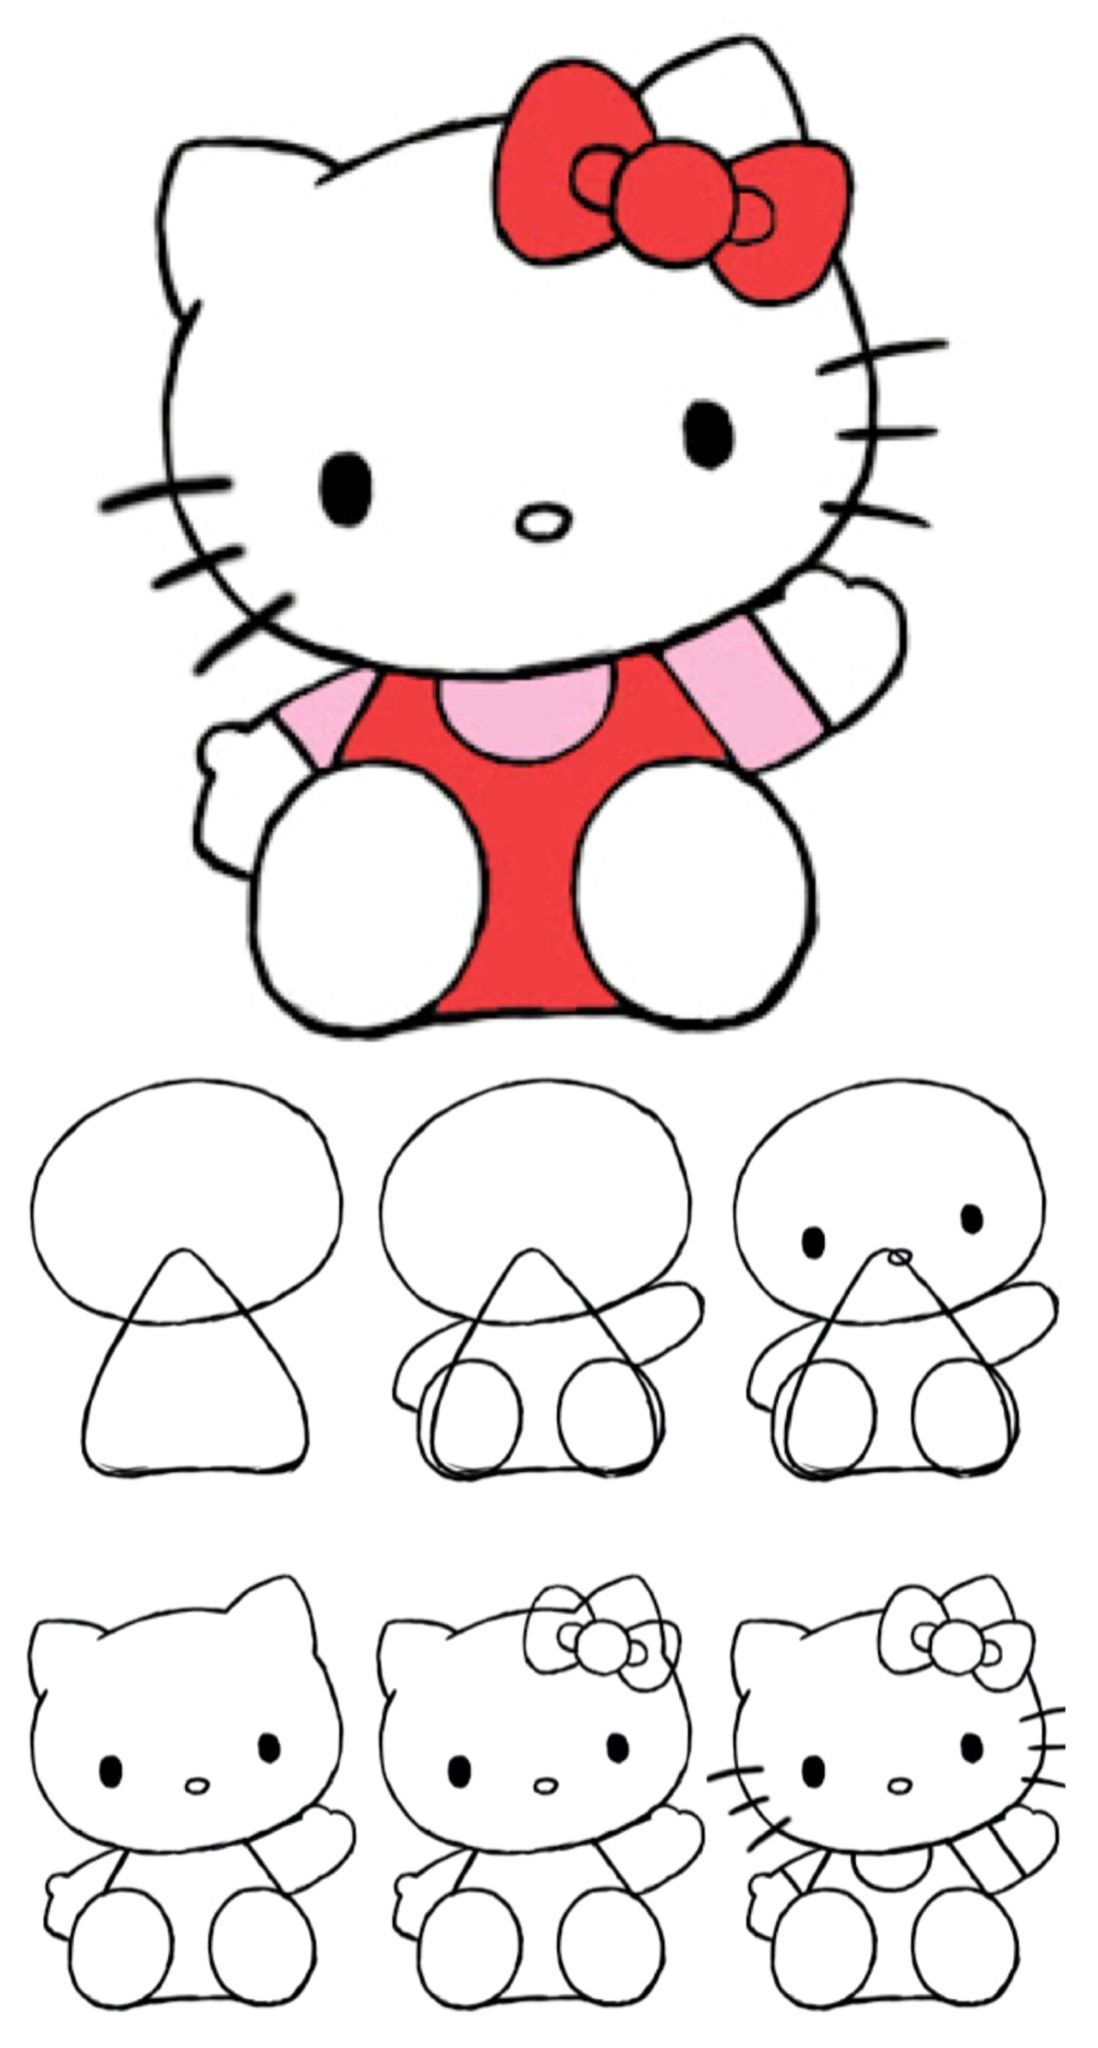 How to draw hello kitty hello kitty kitty and drawings